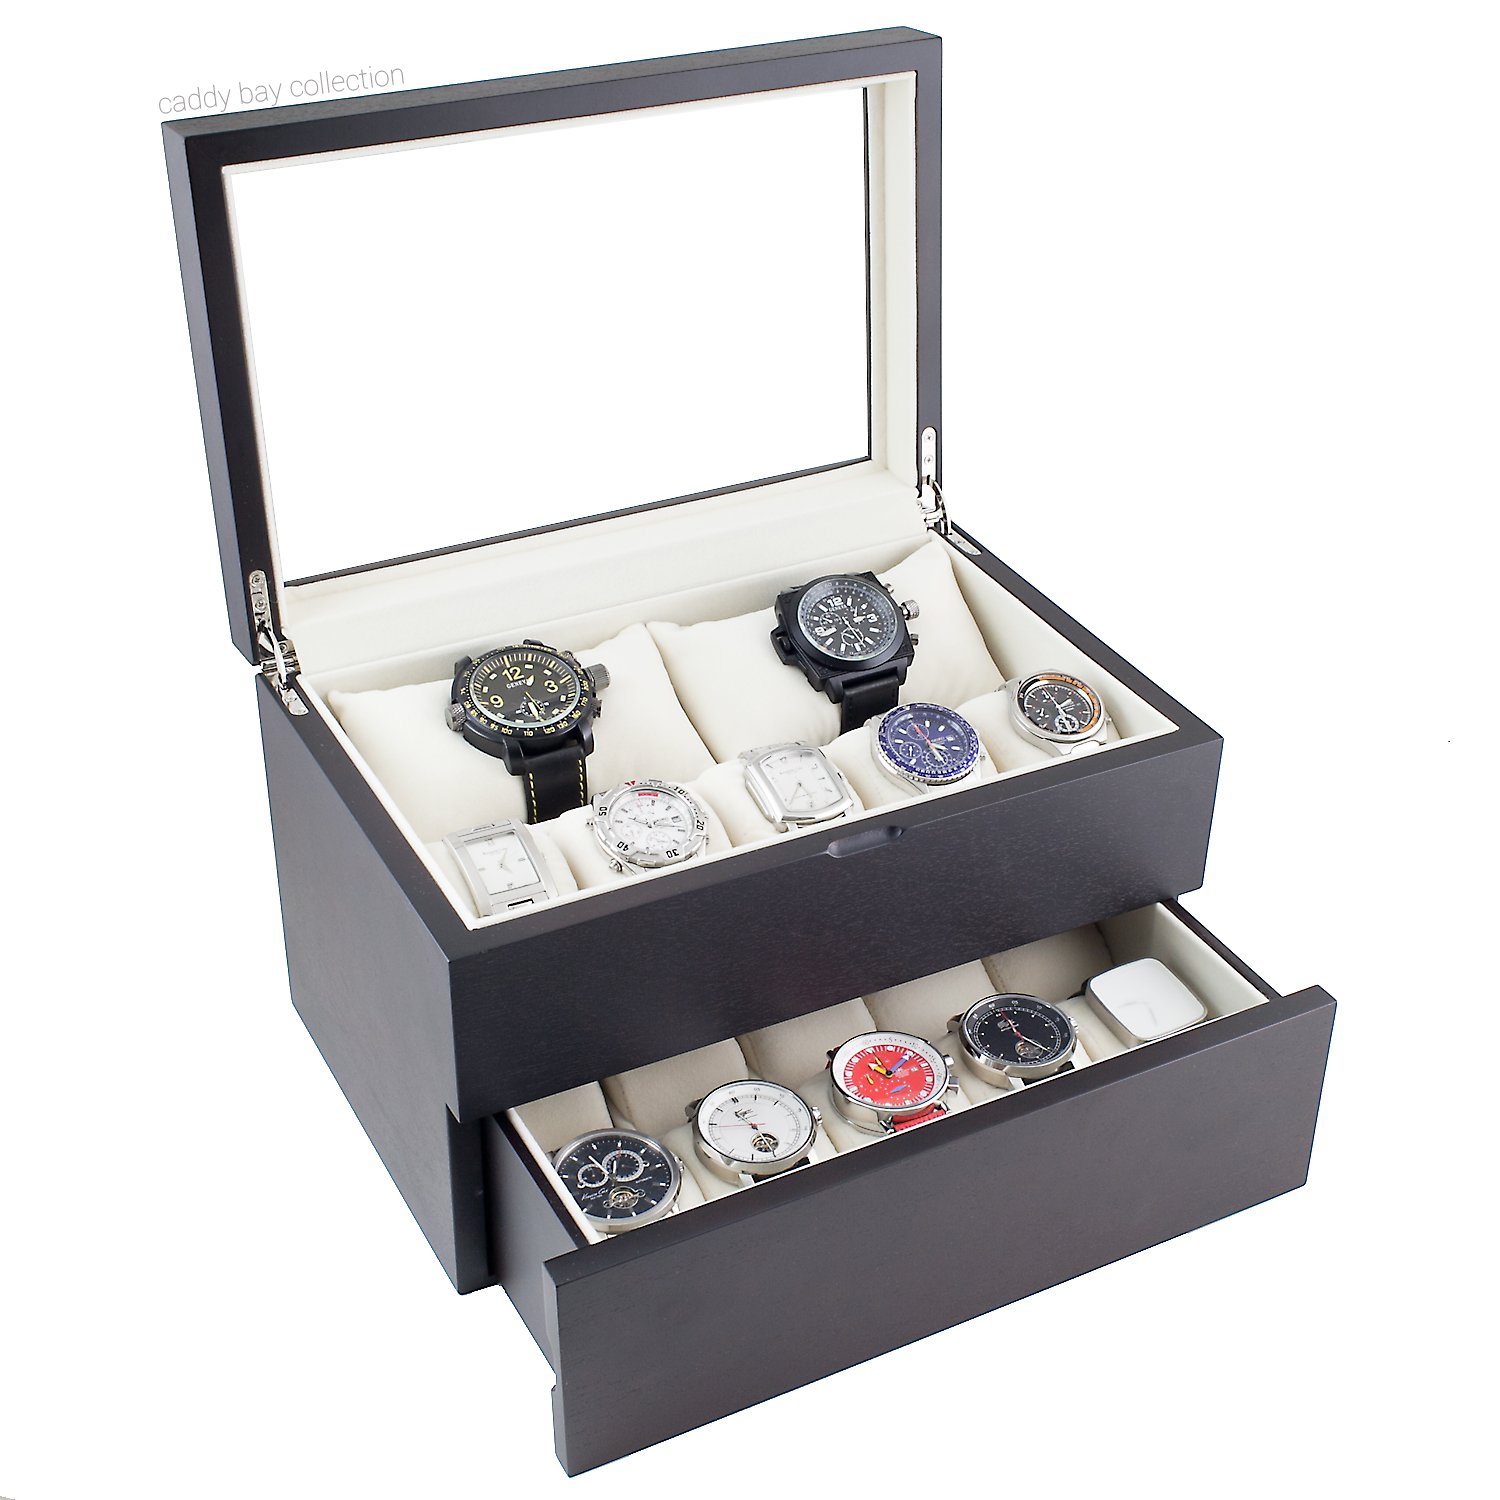 Caddy Bay Collection Vintage Dark Walnut Wood Watch Case Display Storage Watch Box Glass Top Holds 20+ Watches With Adjustable Soft Pillows and High Clearance for Larger Watches